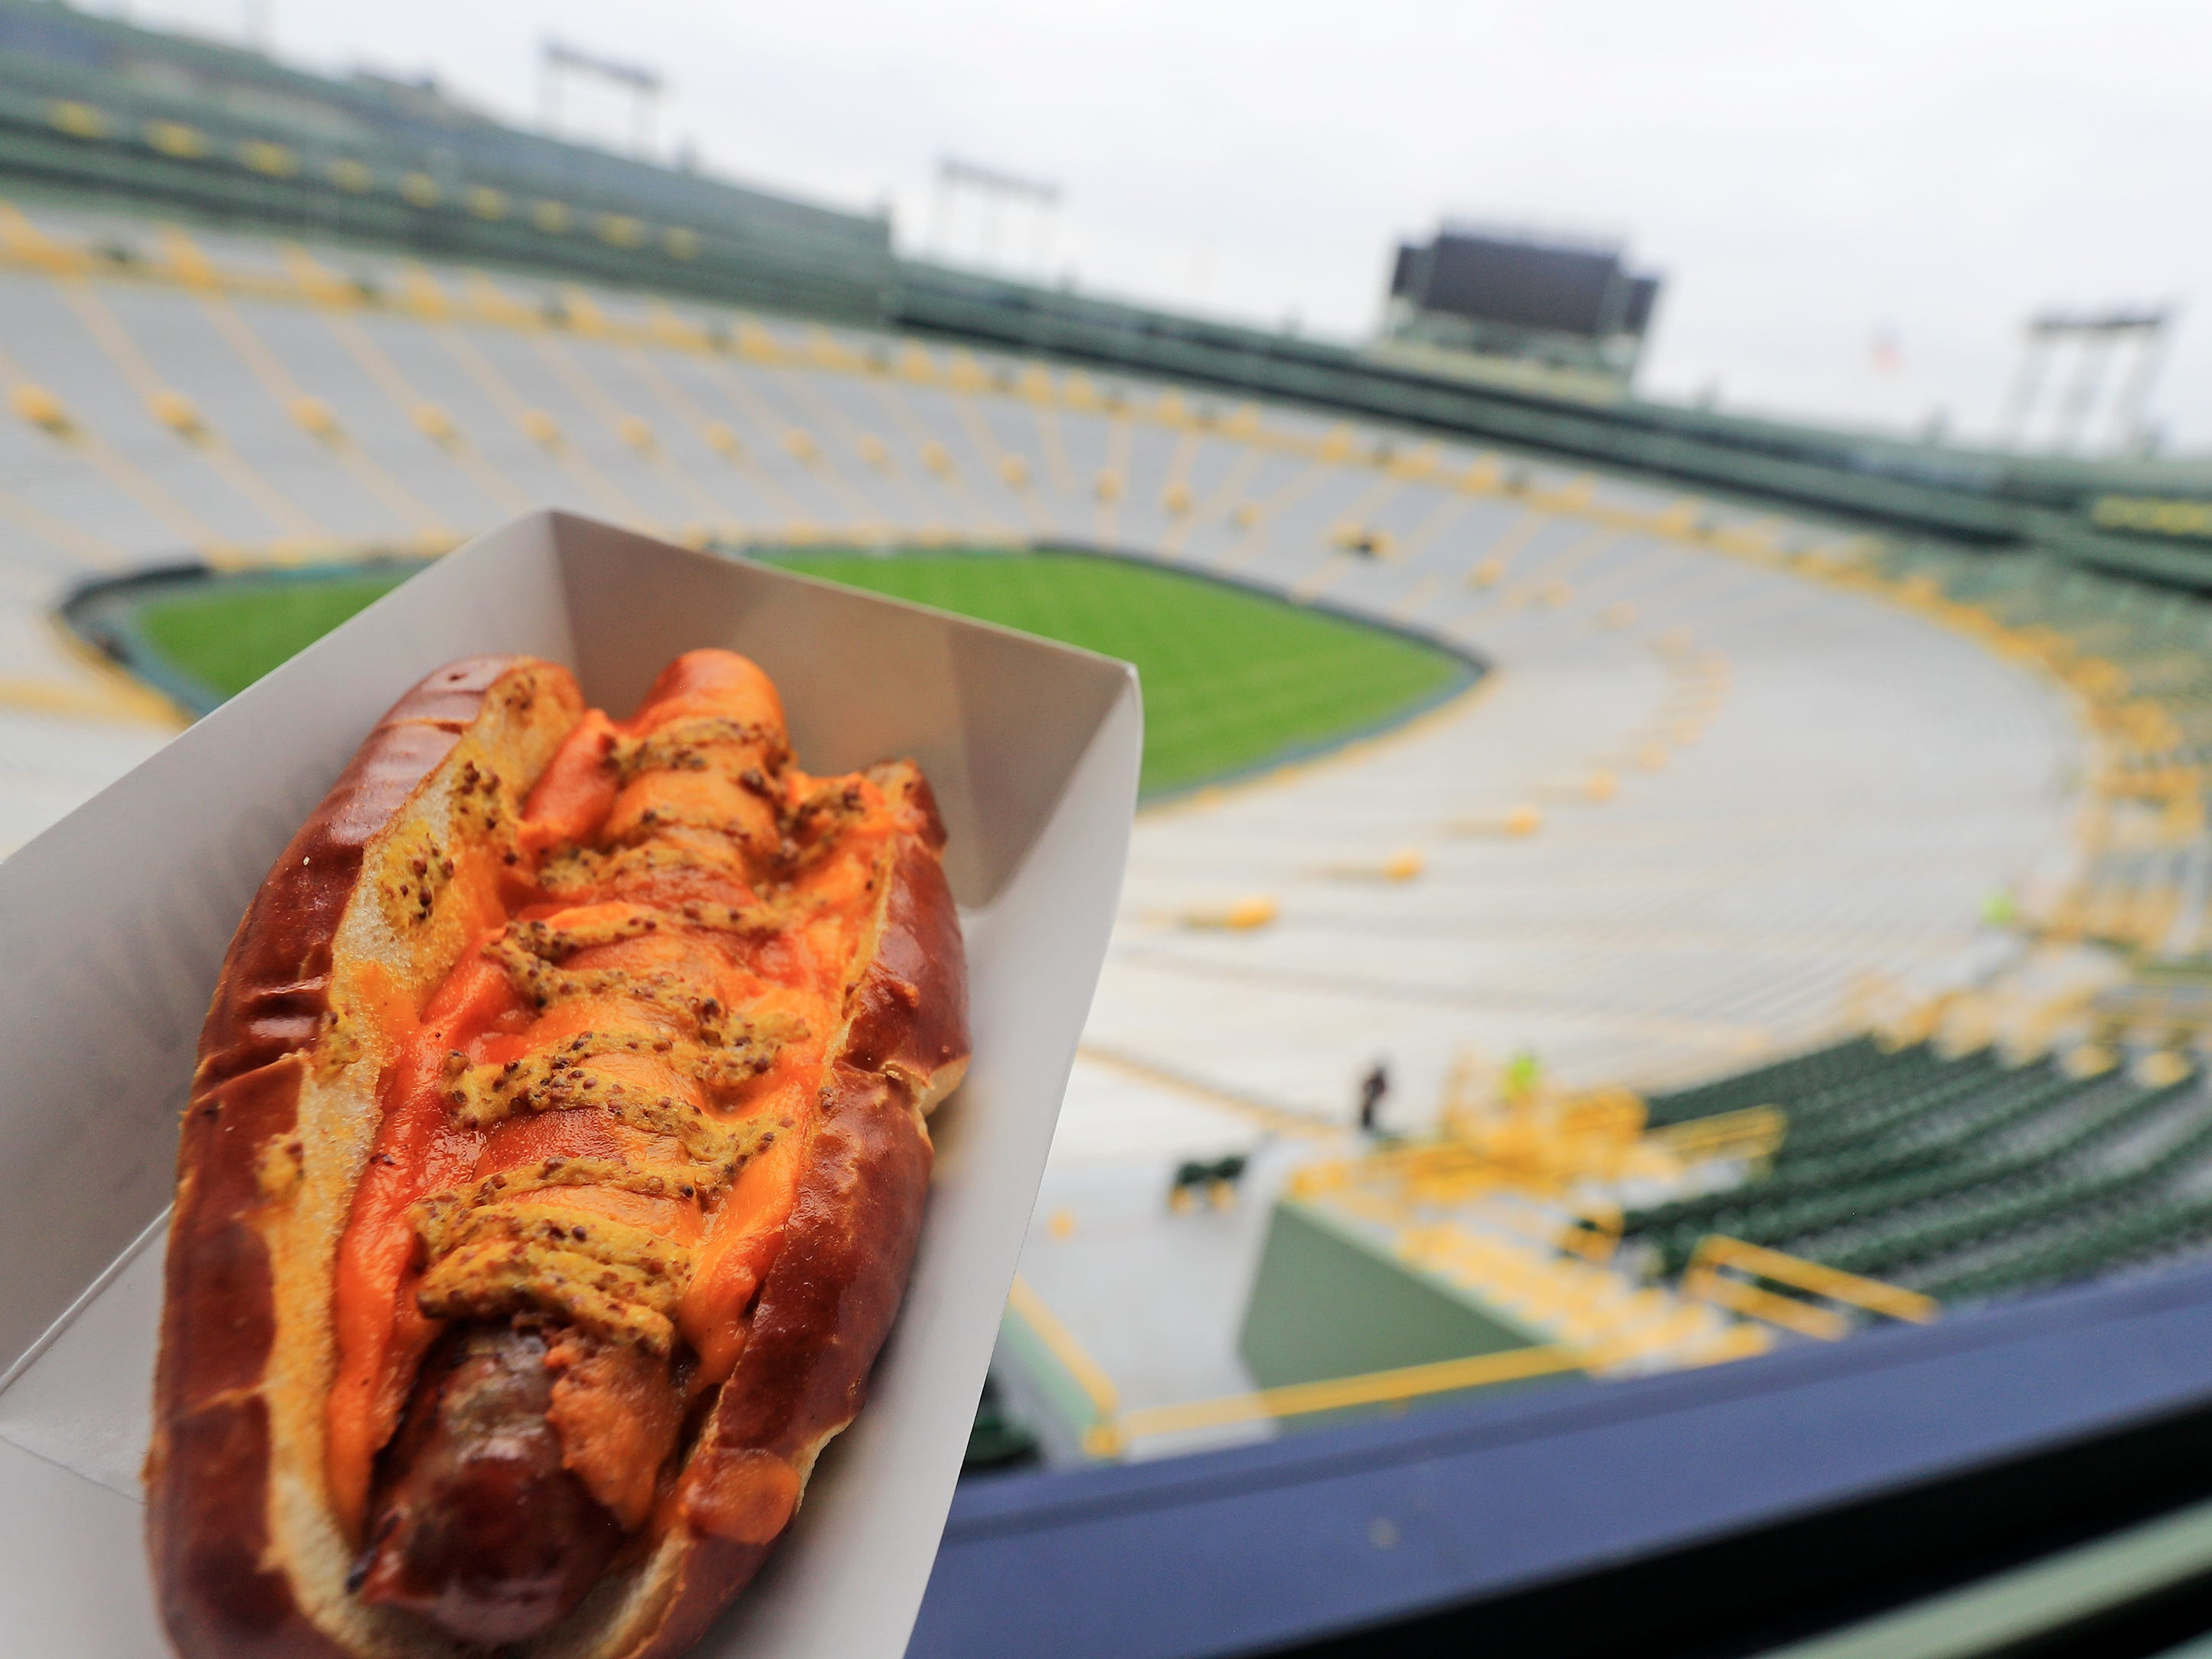 A Brat-in-a-Blanket is shown at Lambeau Field on Tuesday, August 28, 2018 in Green Bay, Wis.